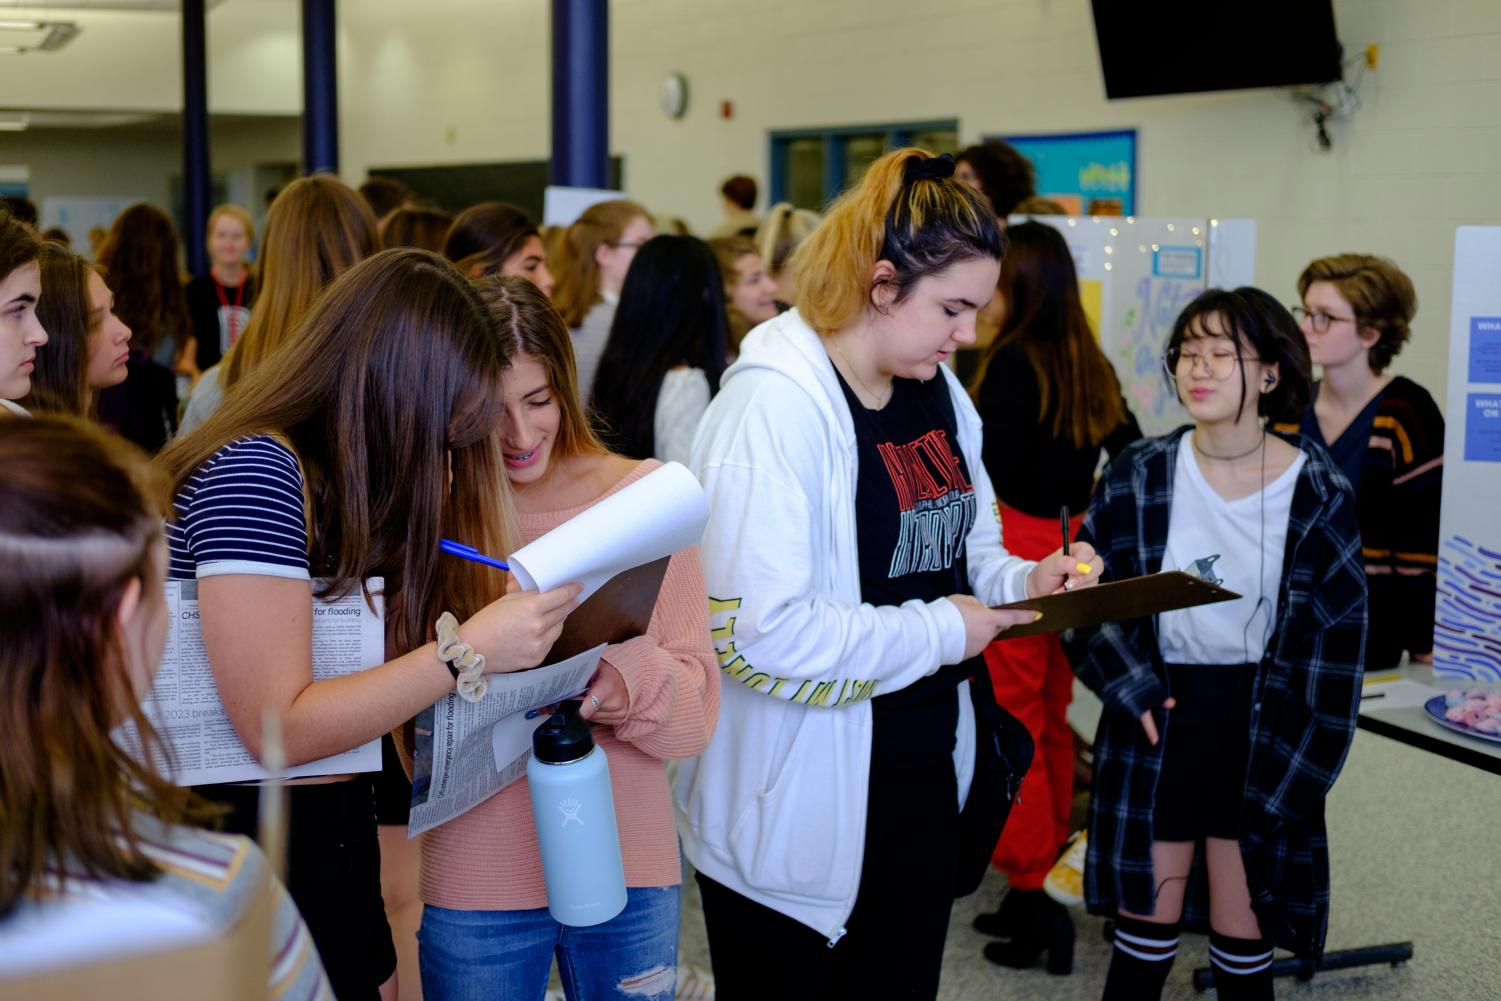 Students sign up for clubs that had stands in the cafeteria on Friday the 13th.